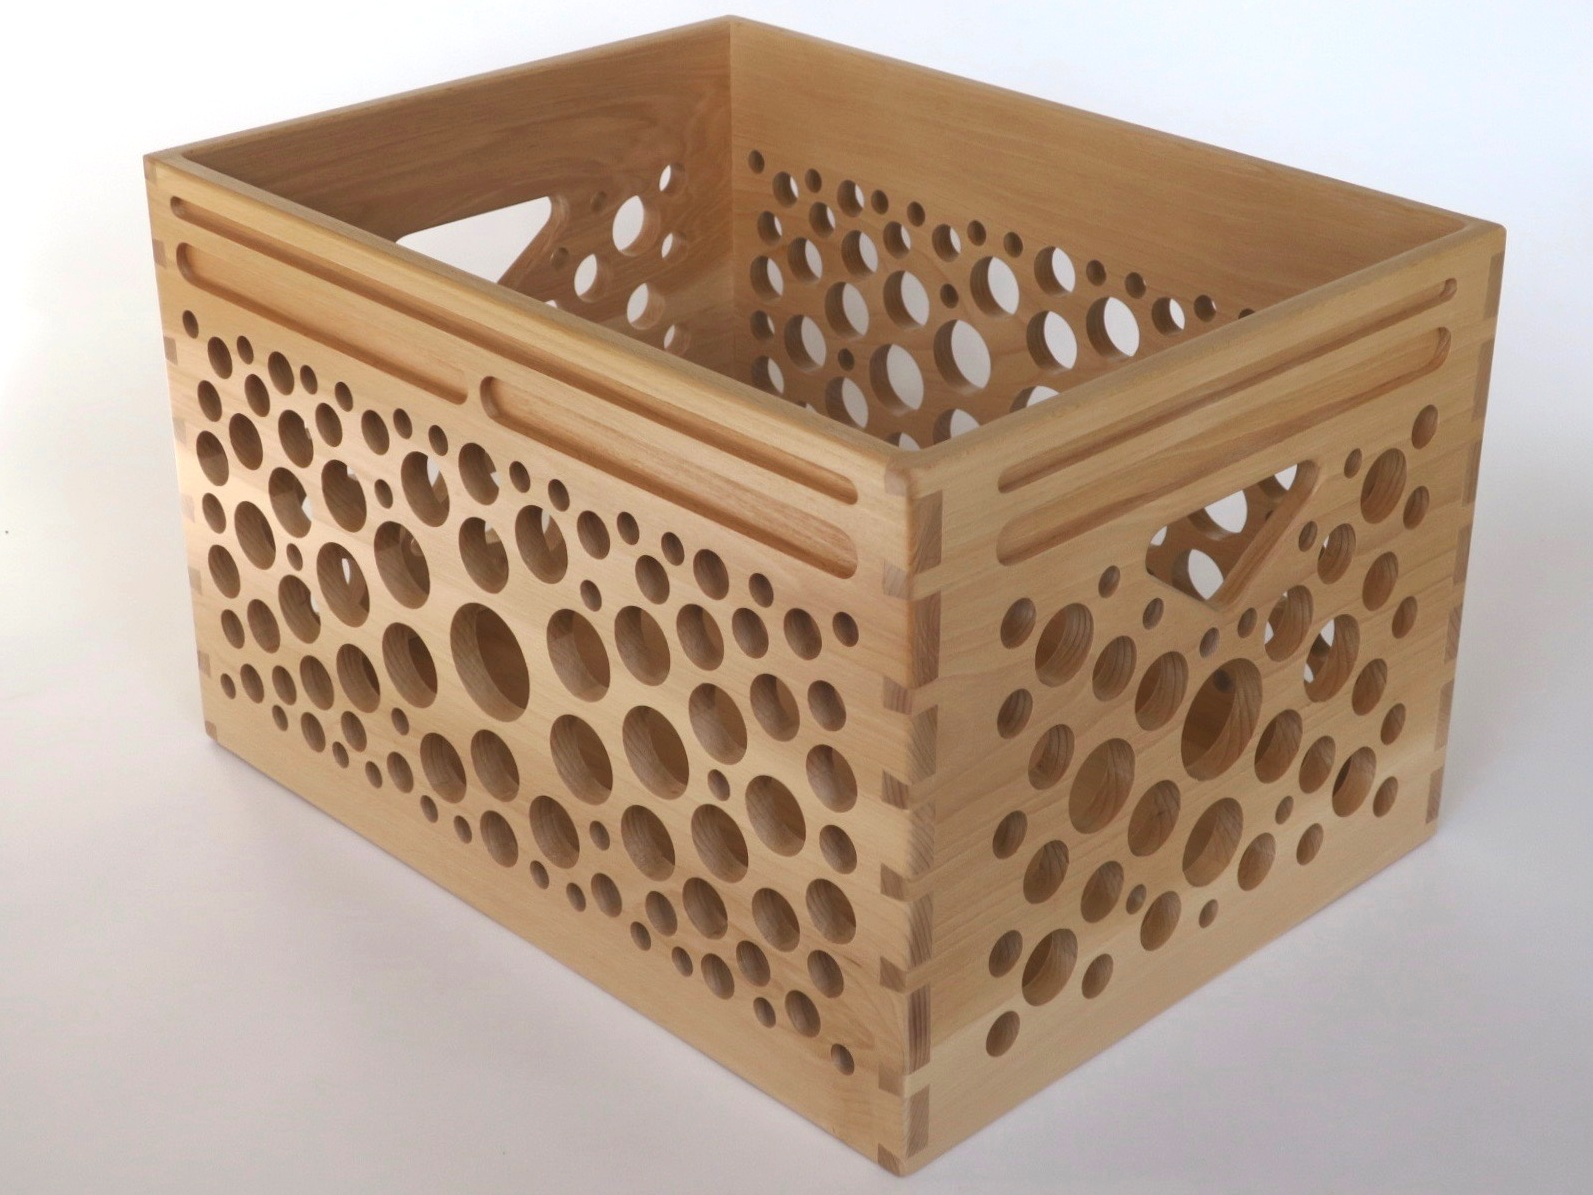 HiFi Crate in Beech